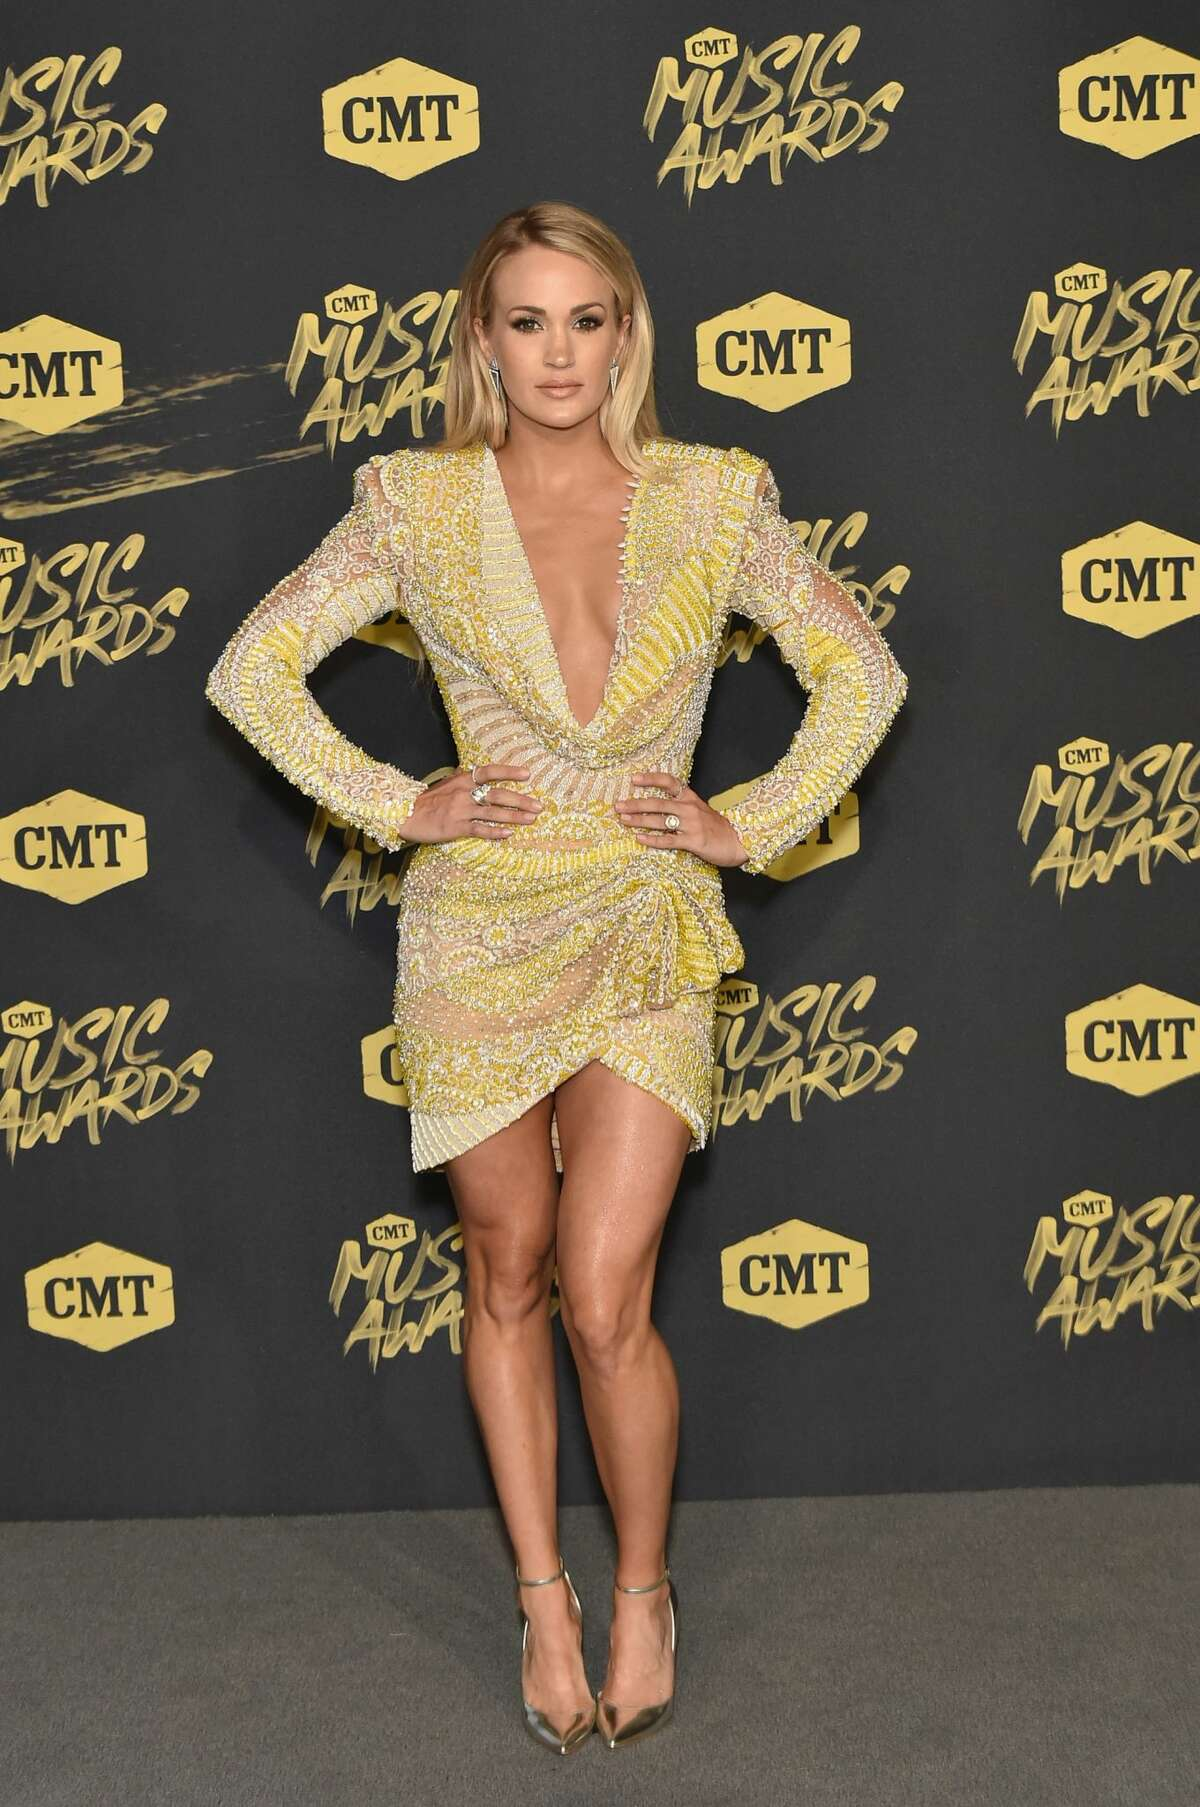 Best: A goldenCarrie Underwood is the award.